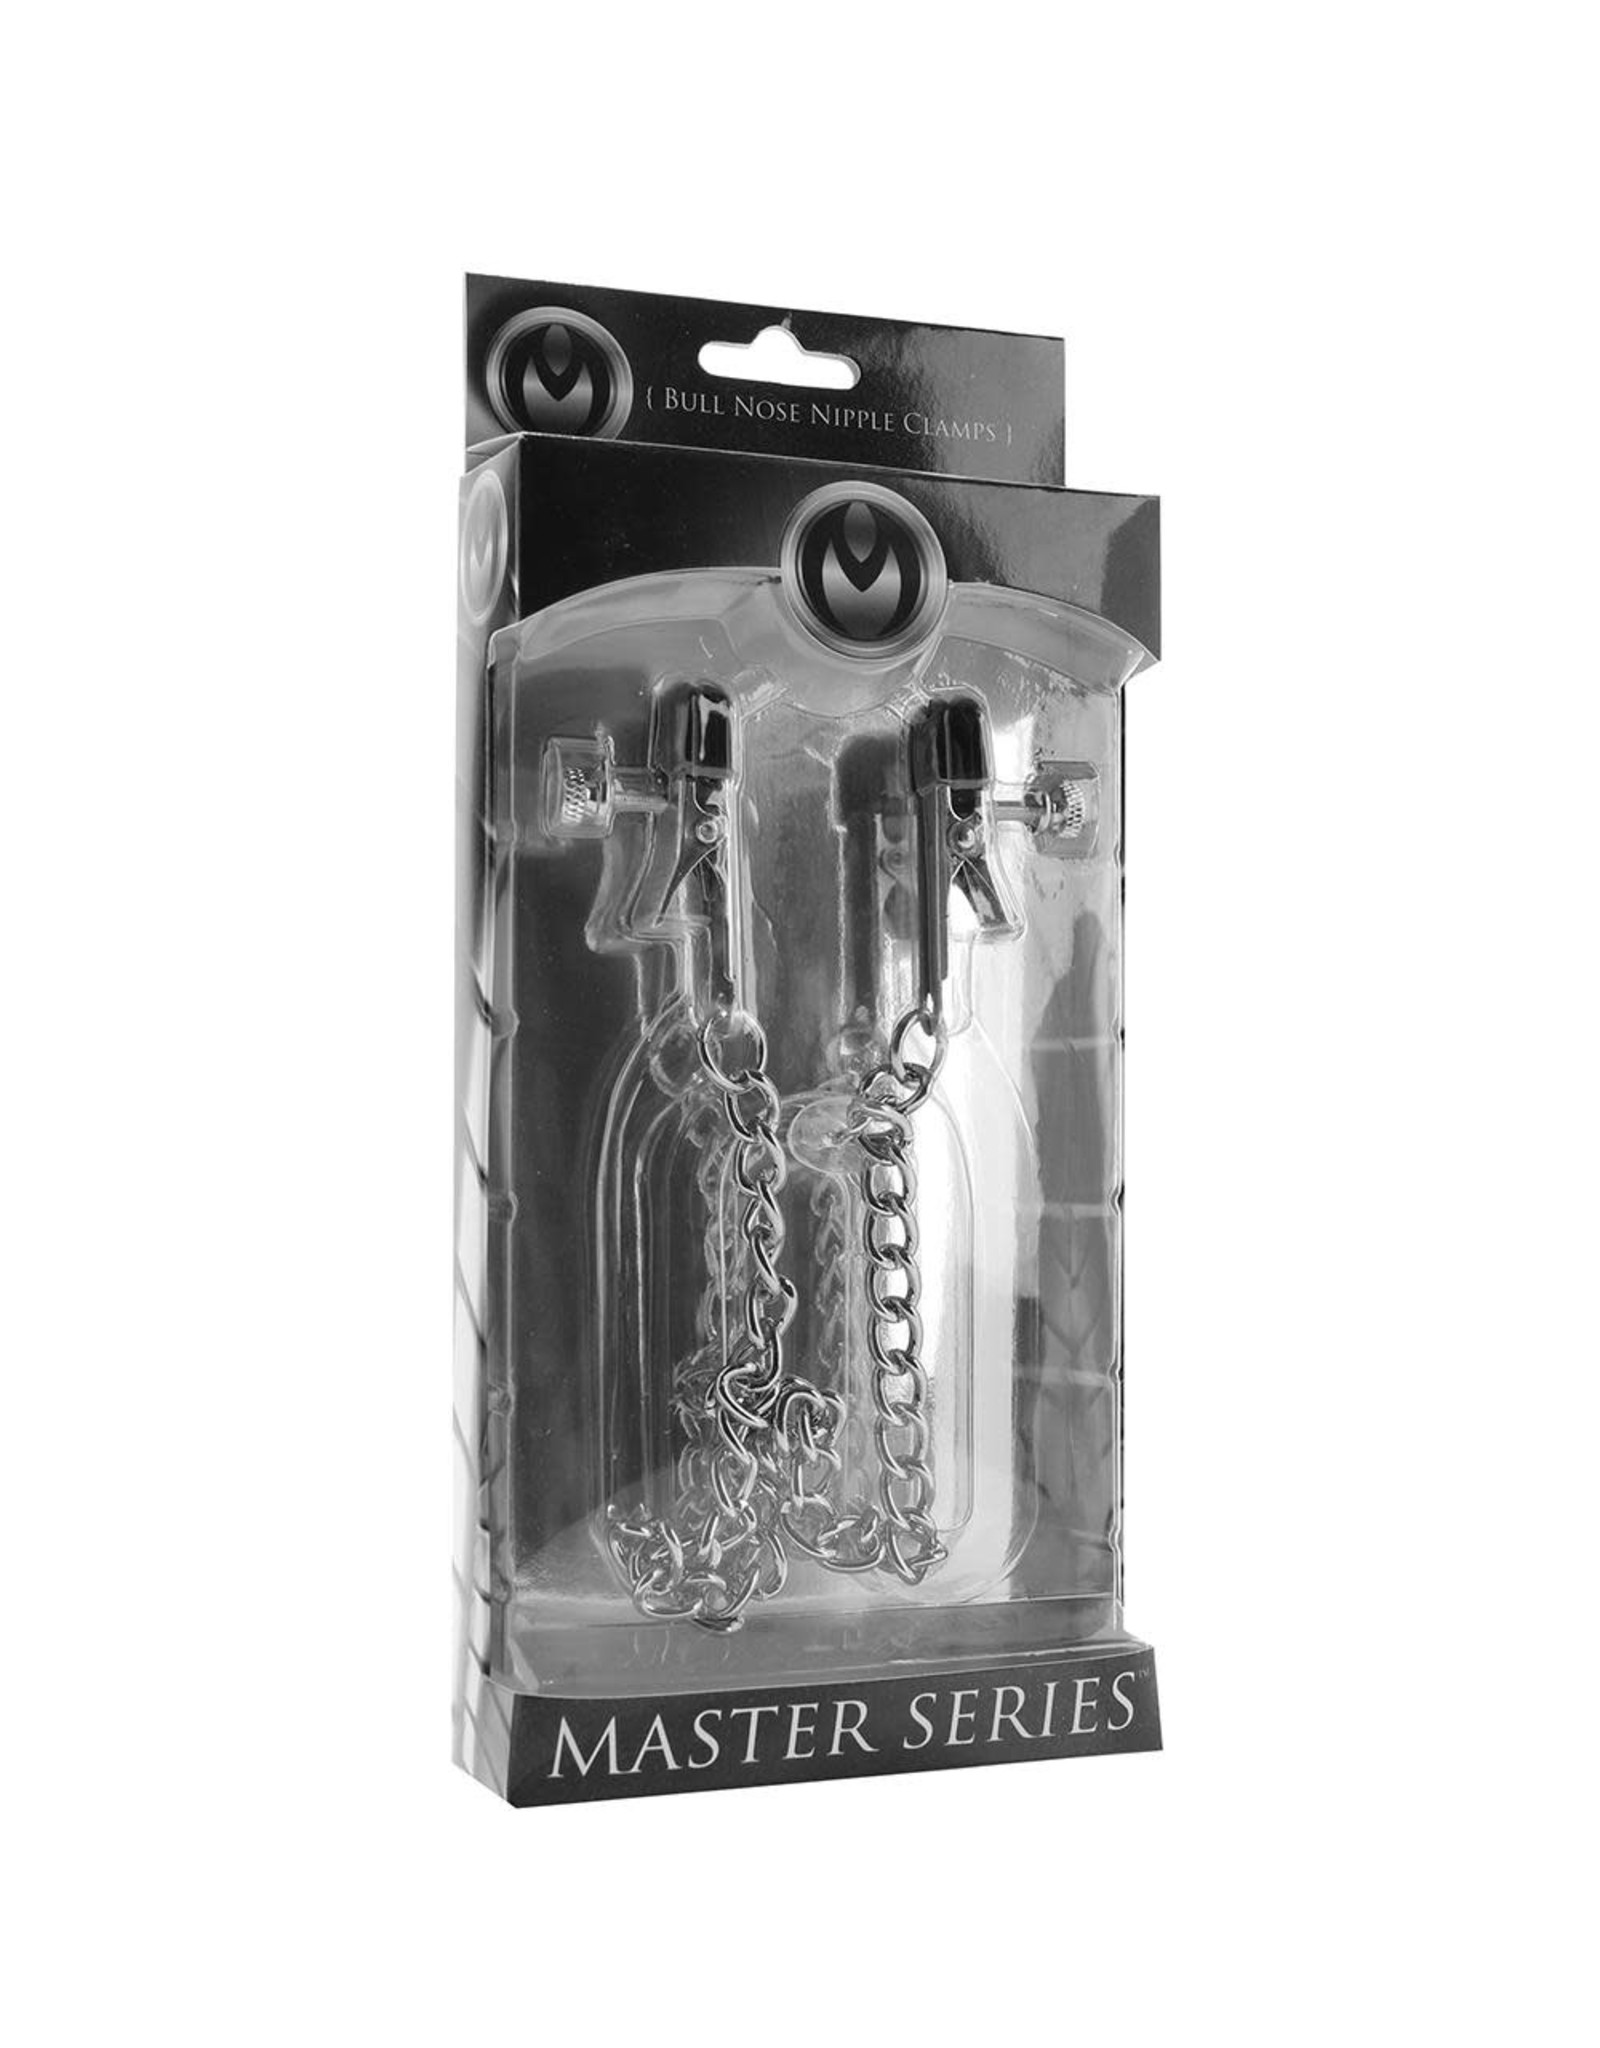 MASTER SERIES MASTER SERIES OX BULL NOSE NIPPLE CLAMPS